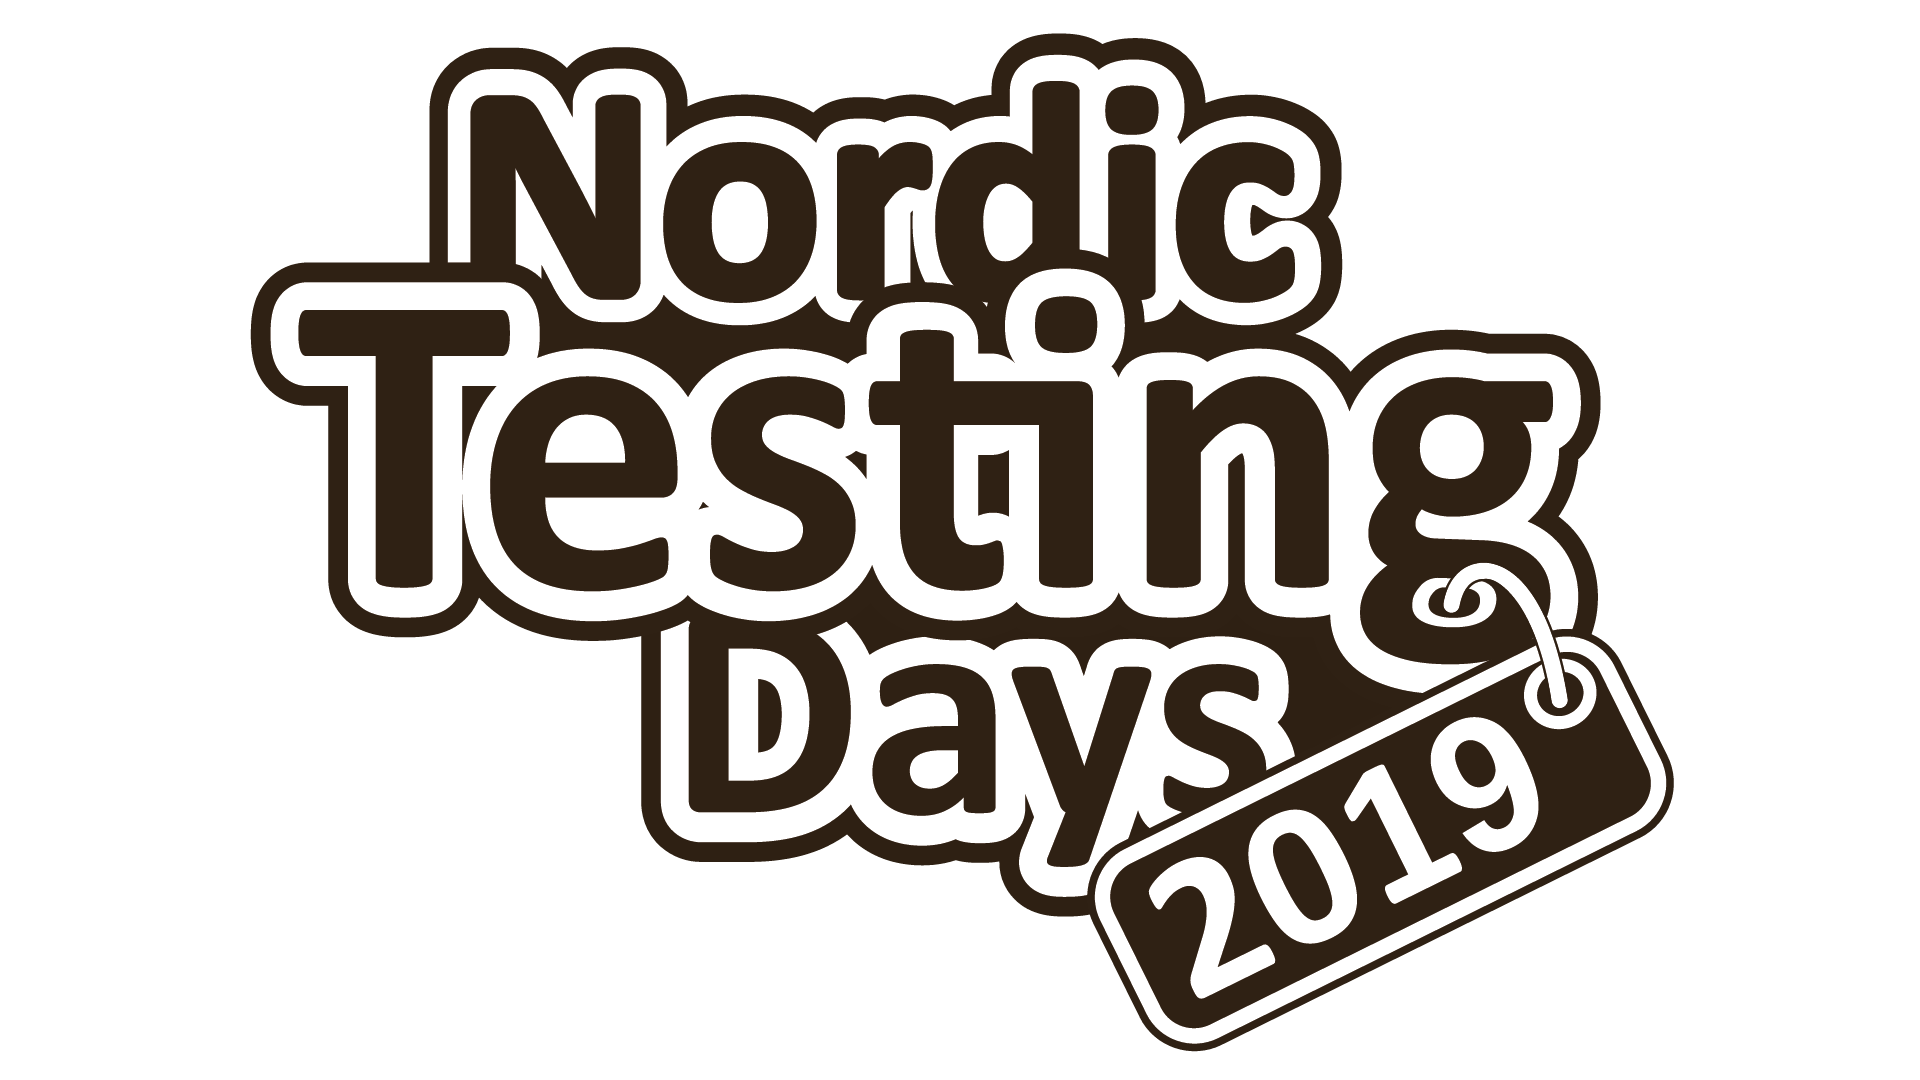 Gil Zilberfeld is speaking on agile planning in nordic testing days 2019